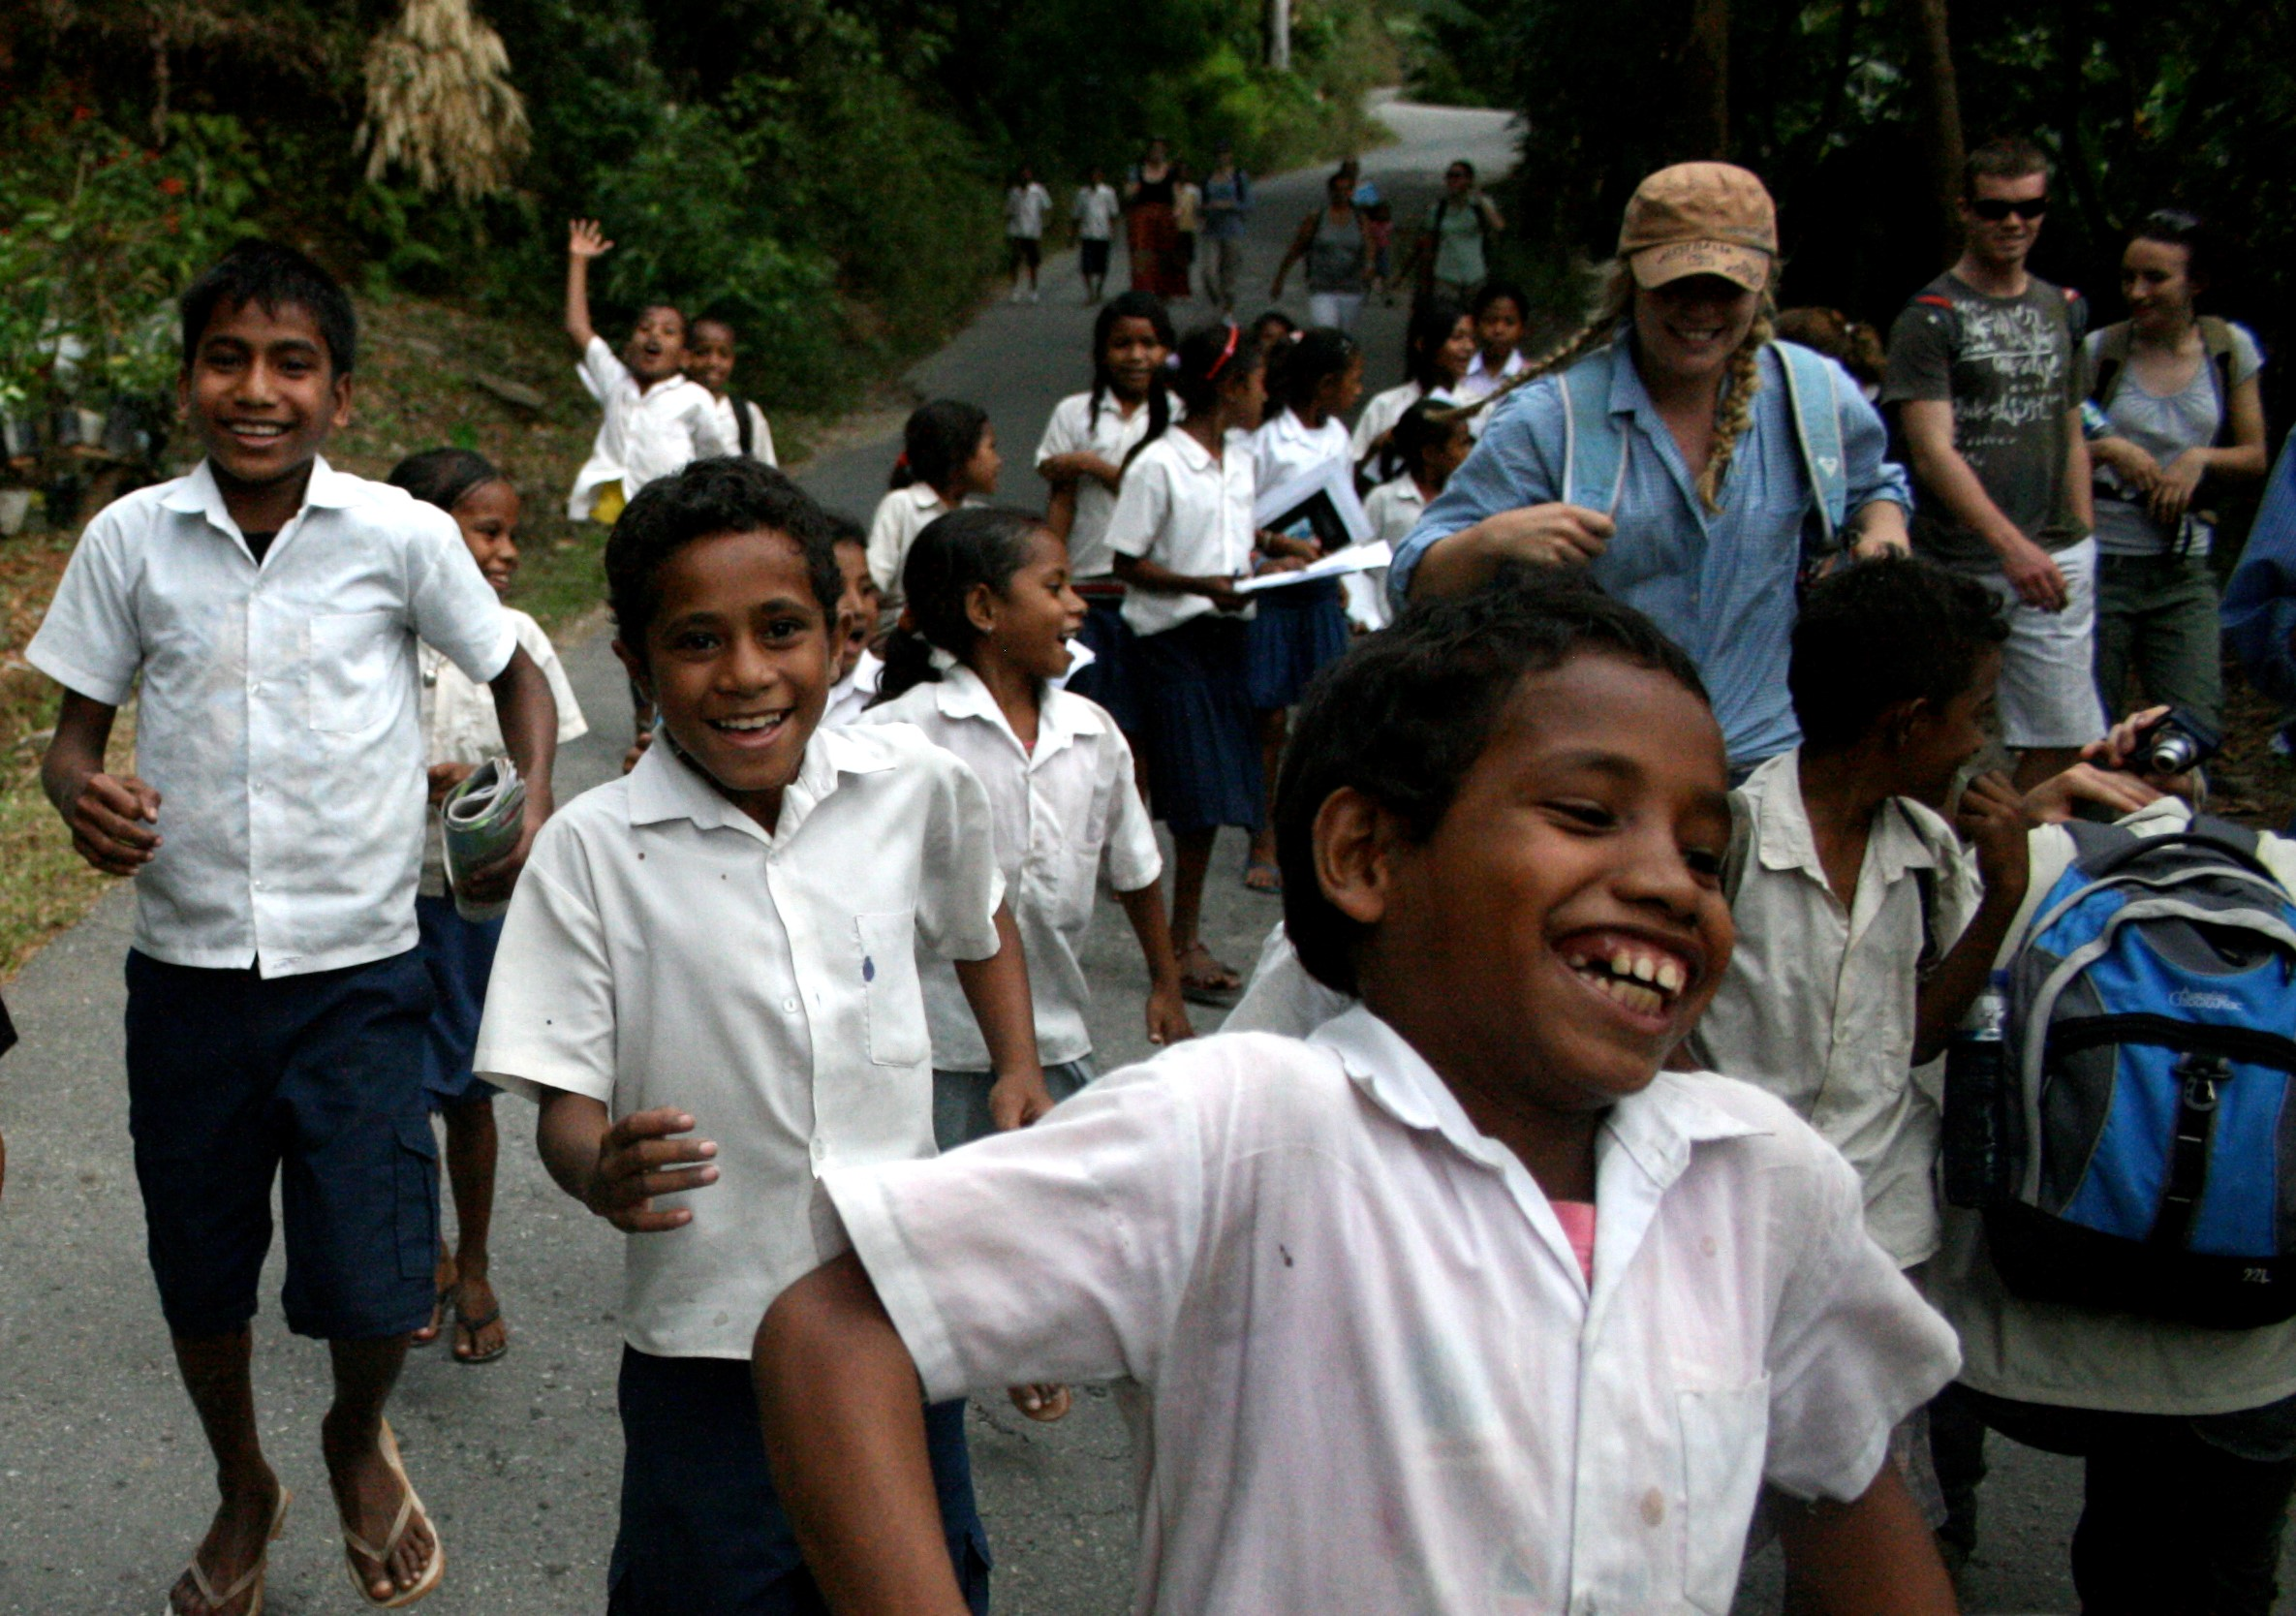 Timorese school children dressed in uniform - white shirts and grey shorts and skirts walkingand running along a road surrounded by greenery. They are having fun. Three Australian college students in their midst.